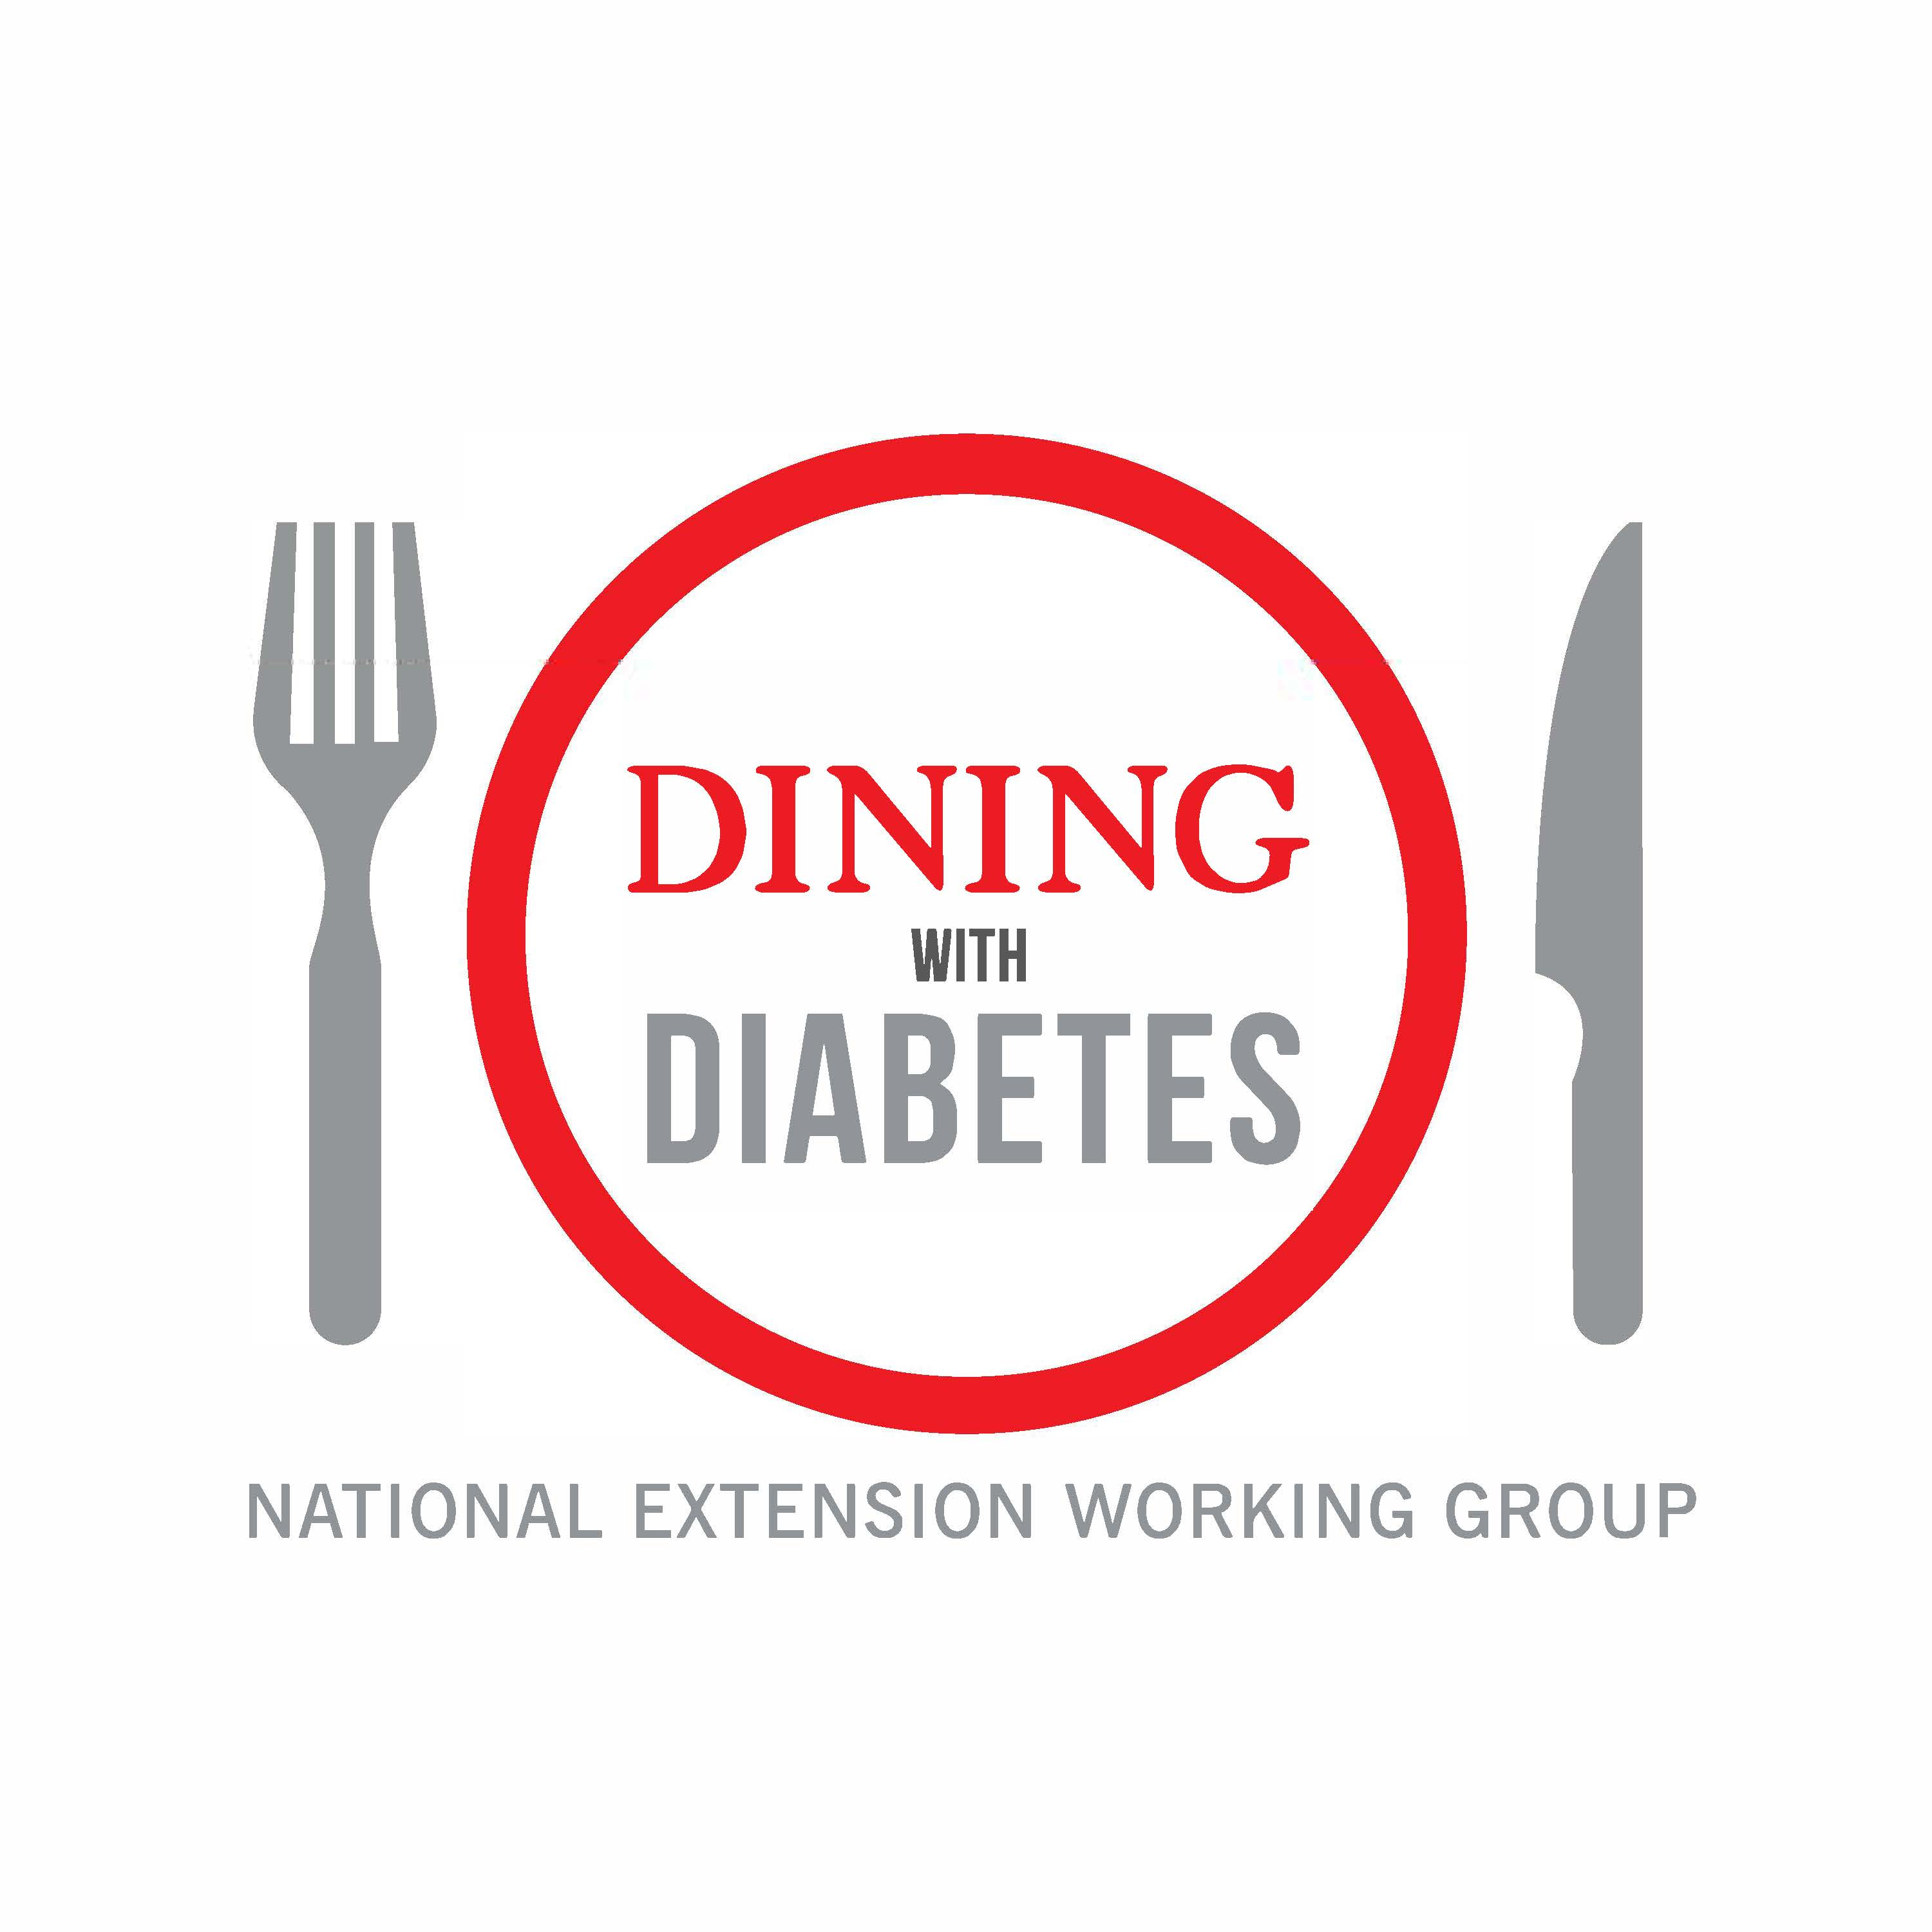 Dining with Diabetes logo